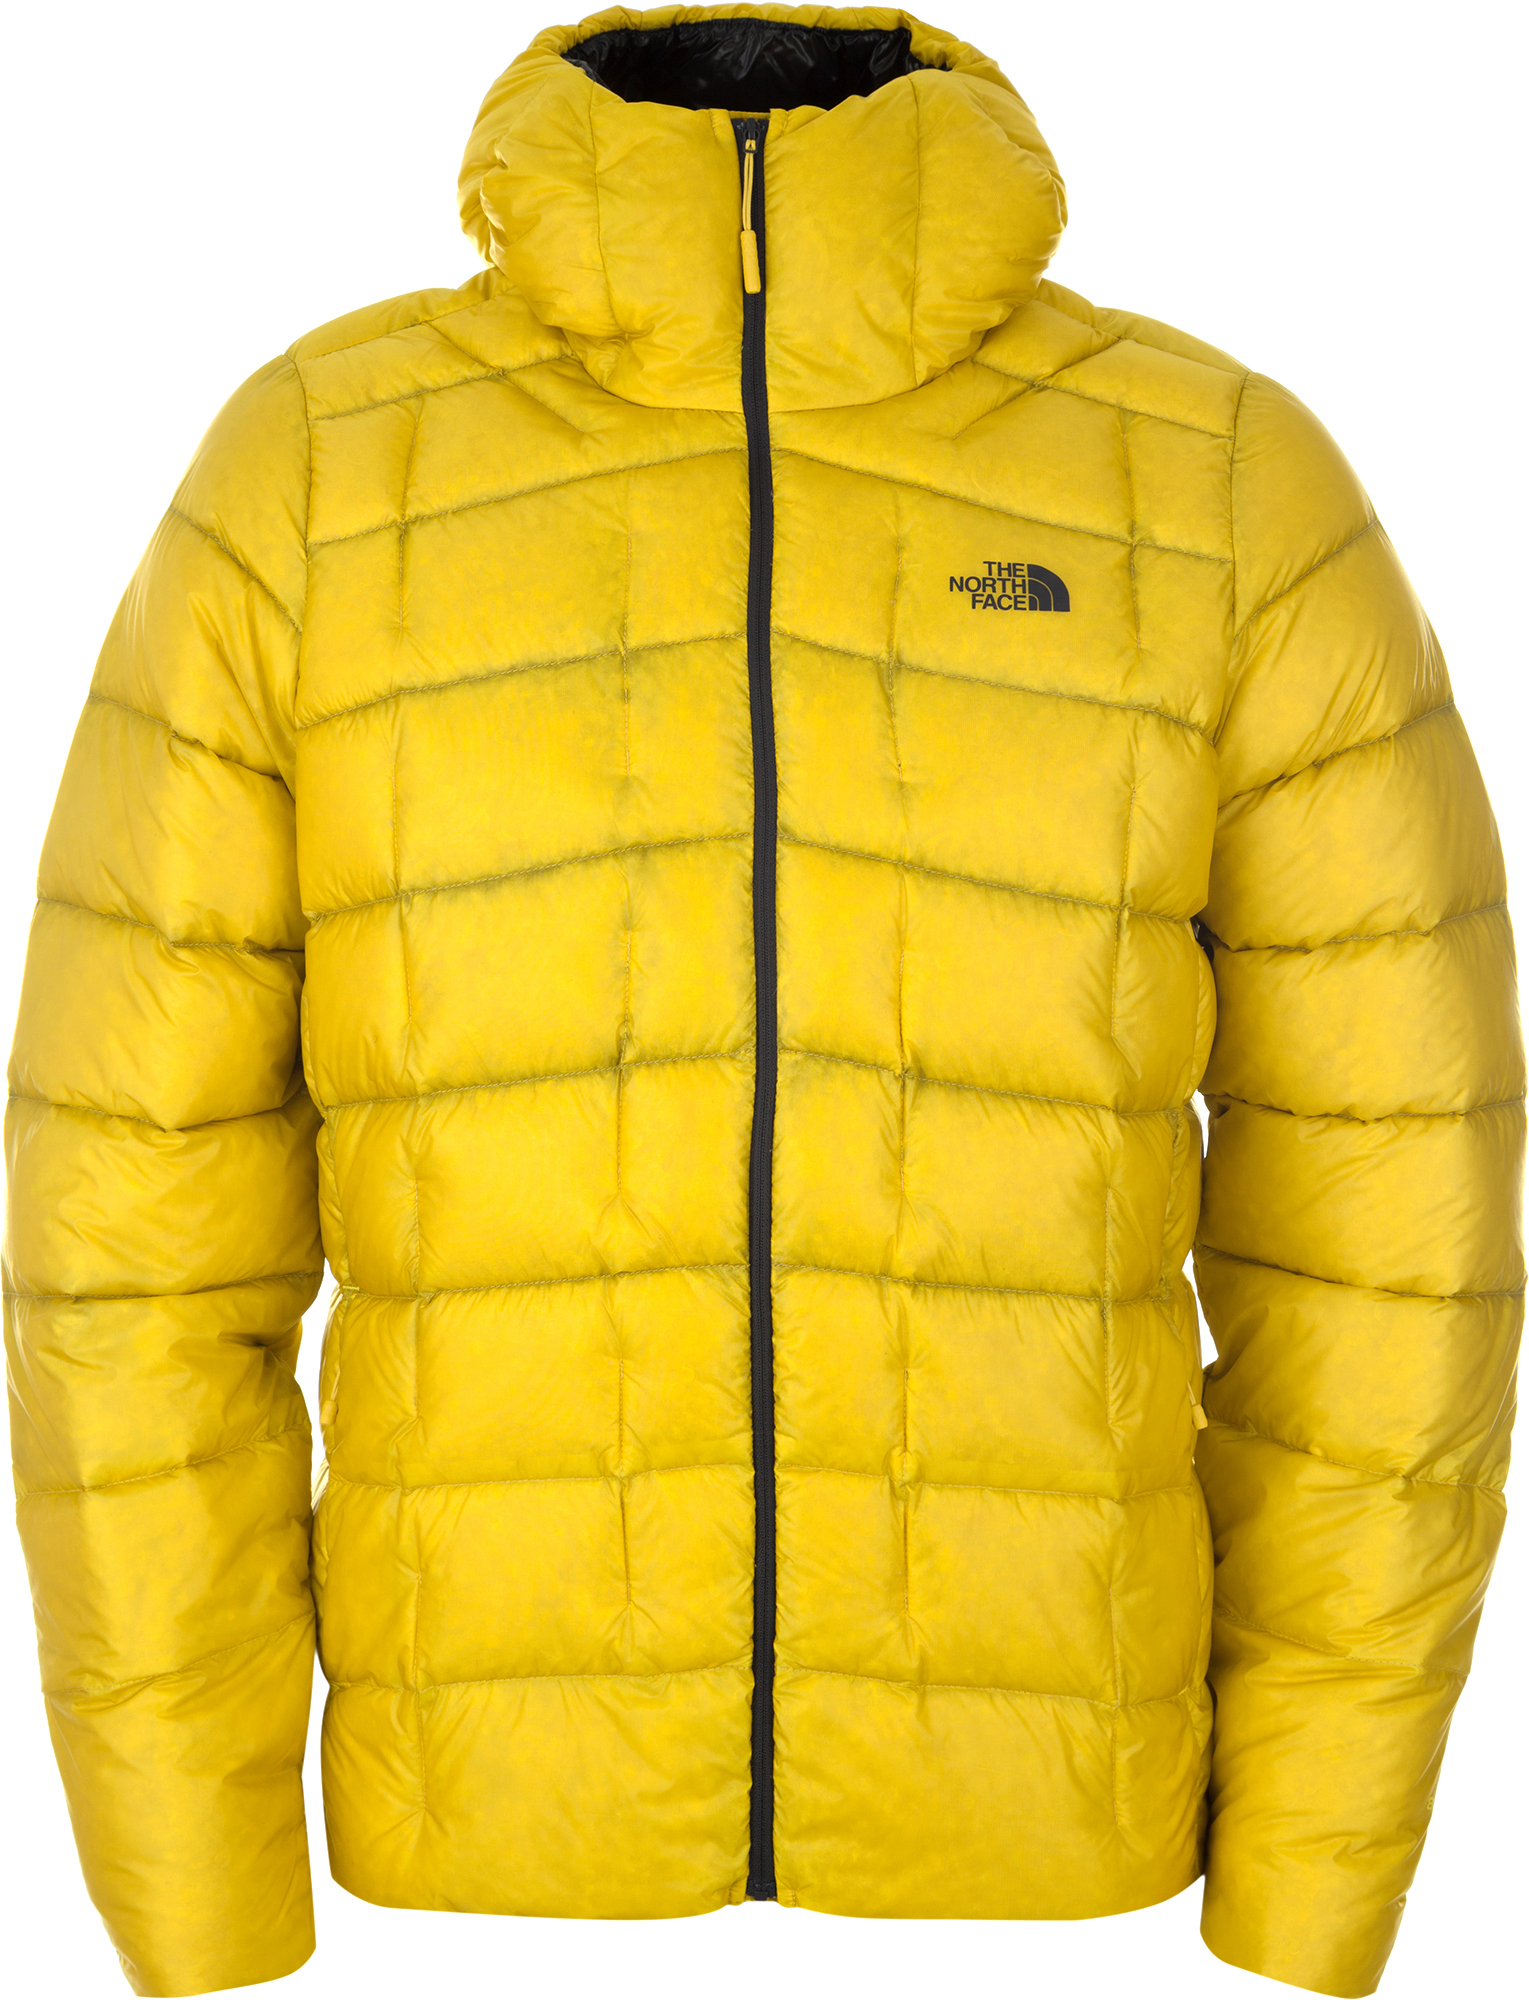 The North Face Куртка пуховая мужская The North Face Supercinco north star by bata no022awqed50